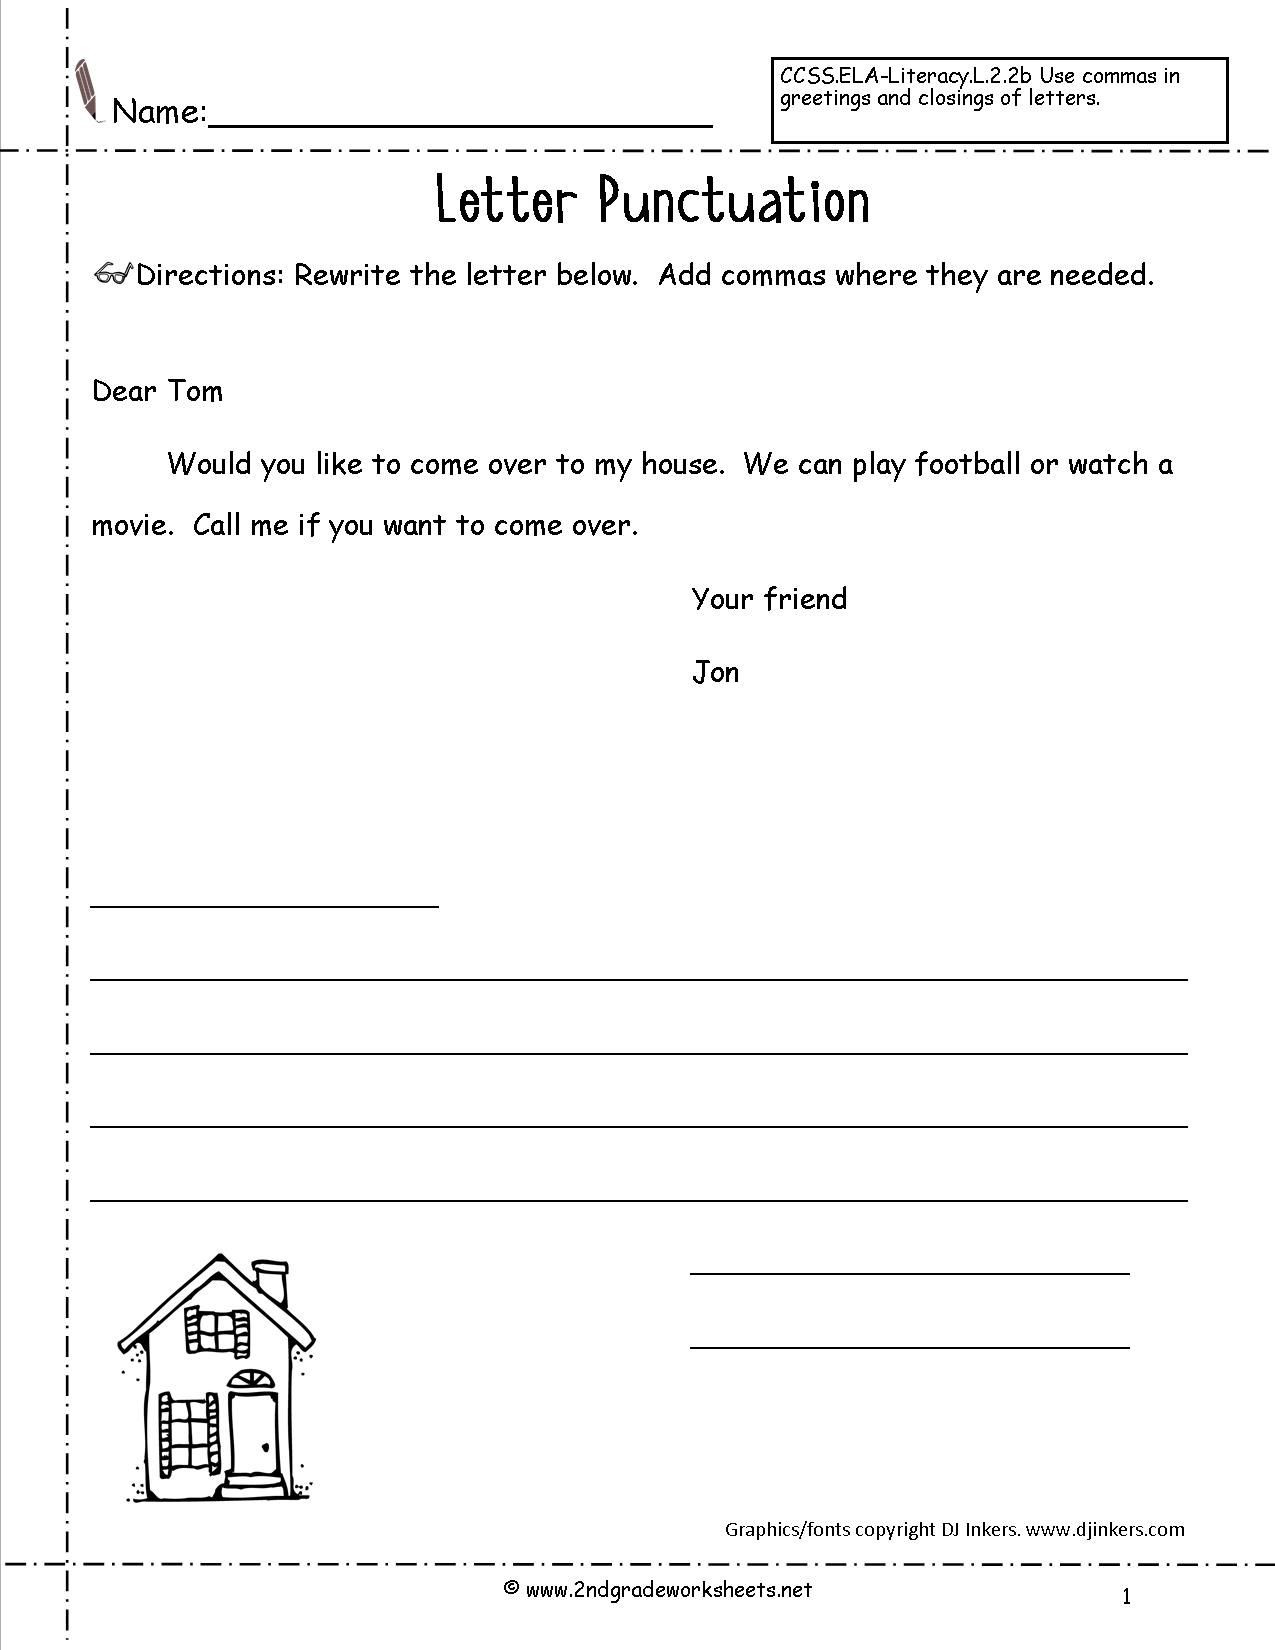 hight resolution of Punctuating Dialogue Worksheet   Printable Worksheets and Activities for  Teachers